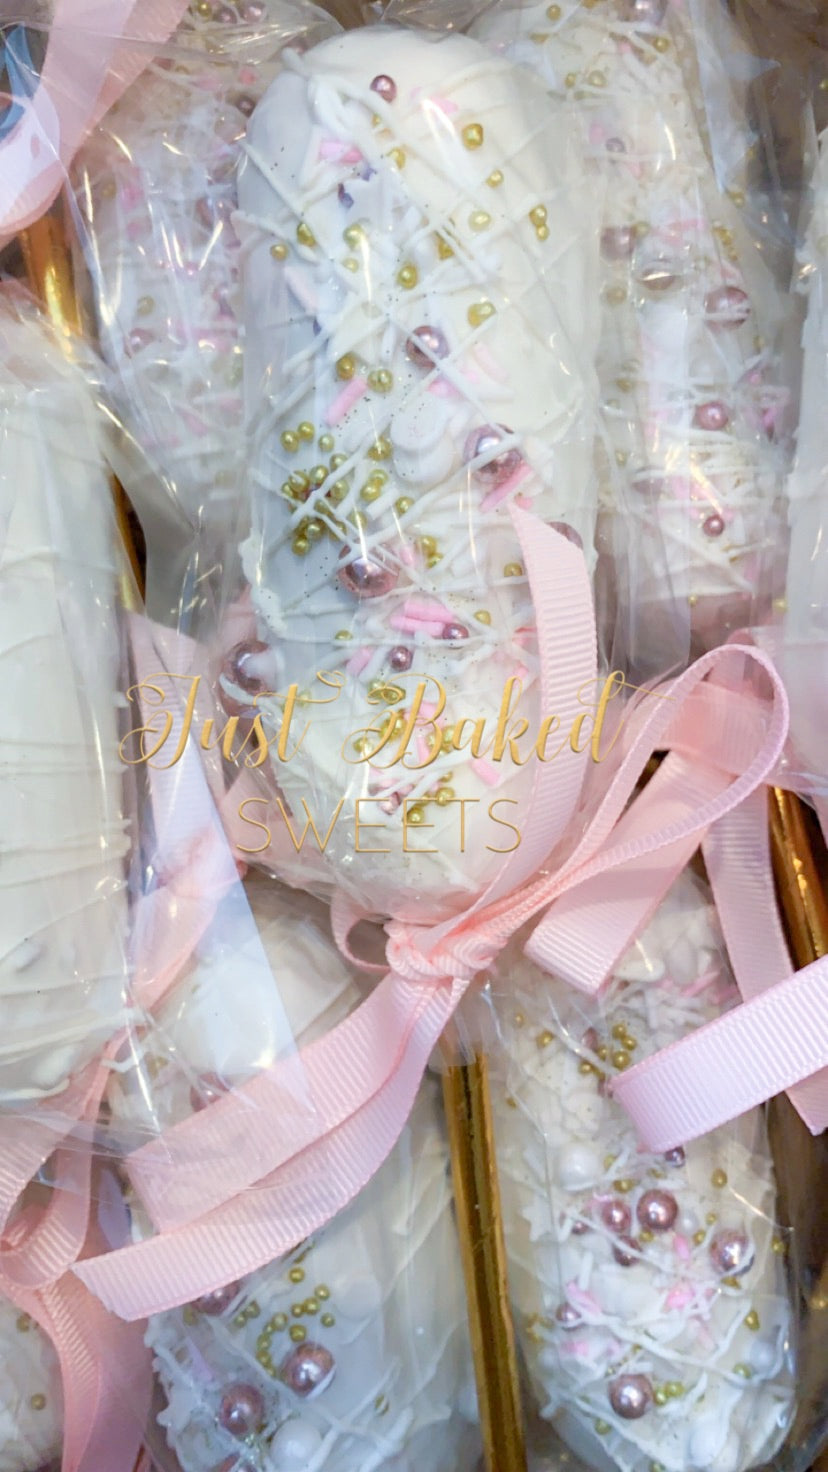 White Chocolate Covered Twinkies with Pink and Gold